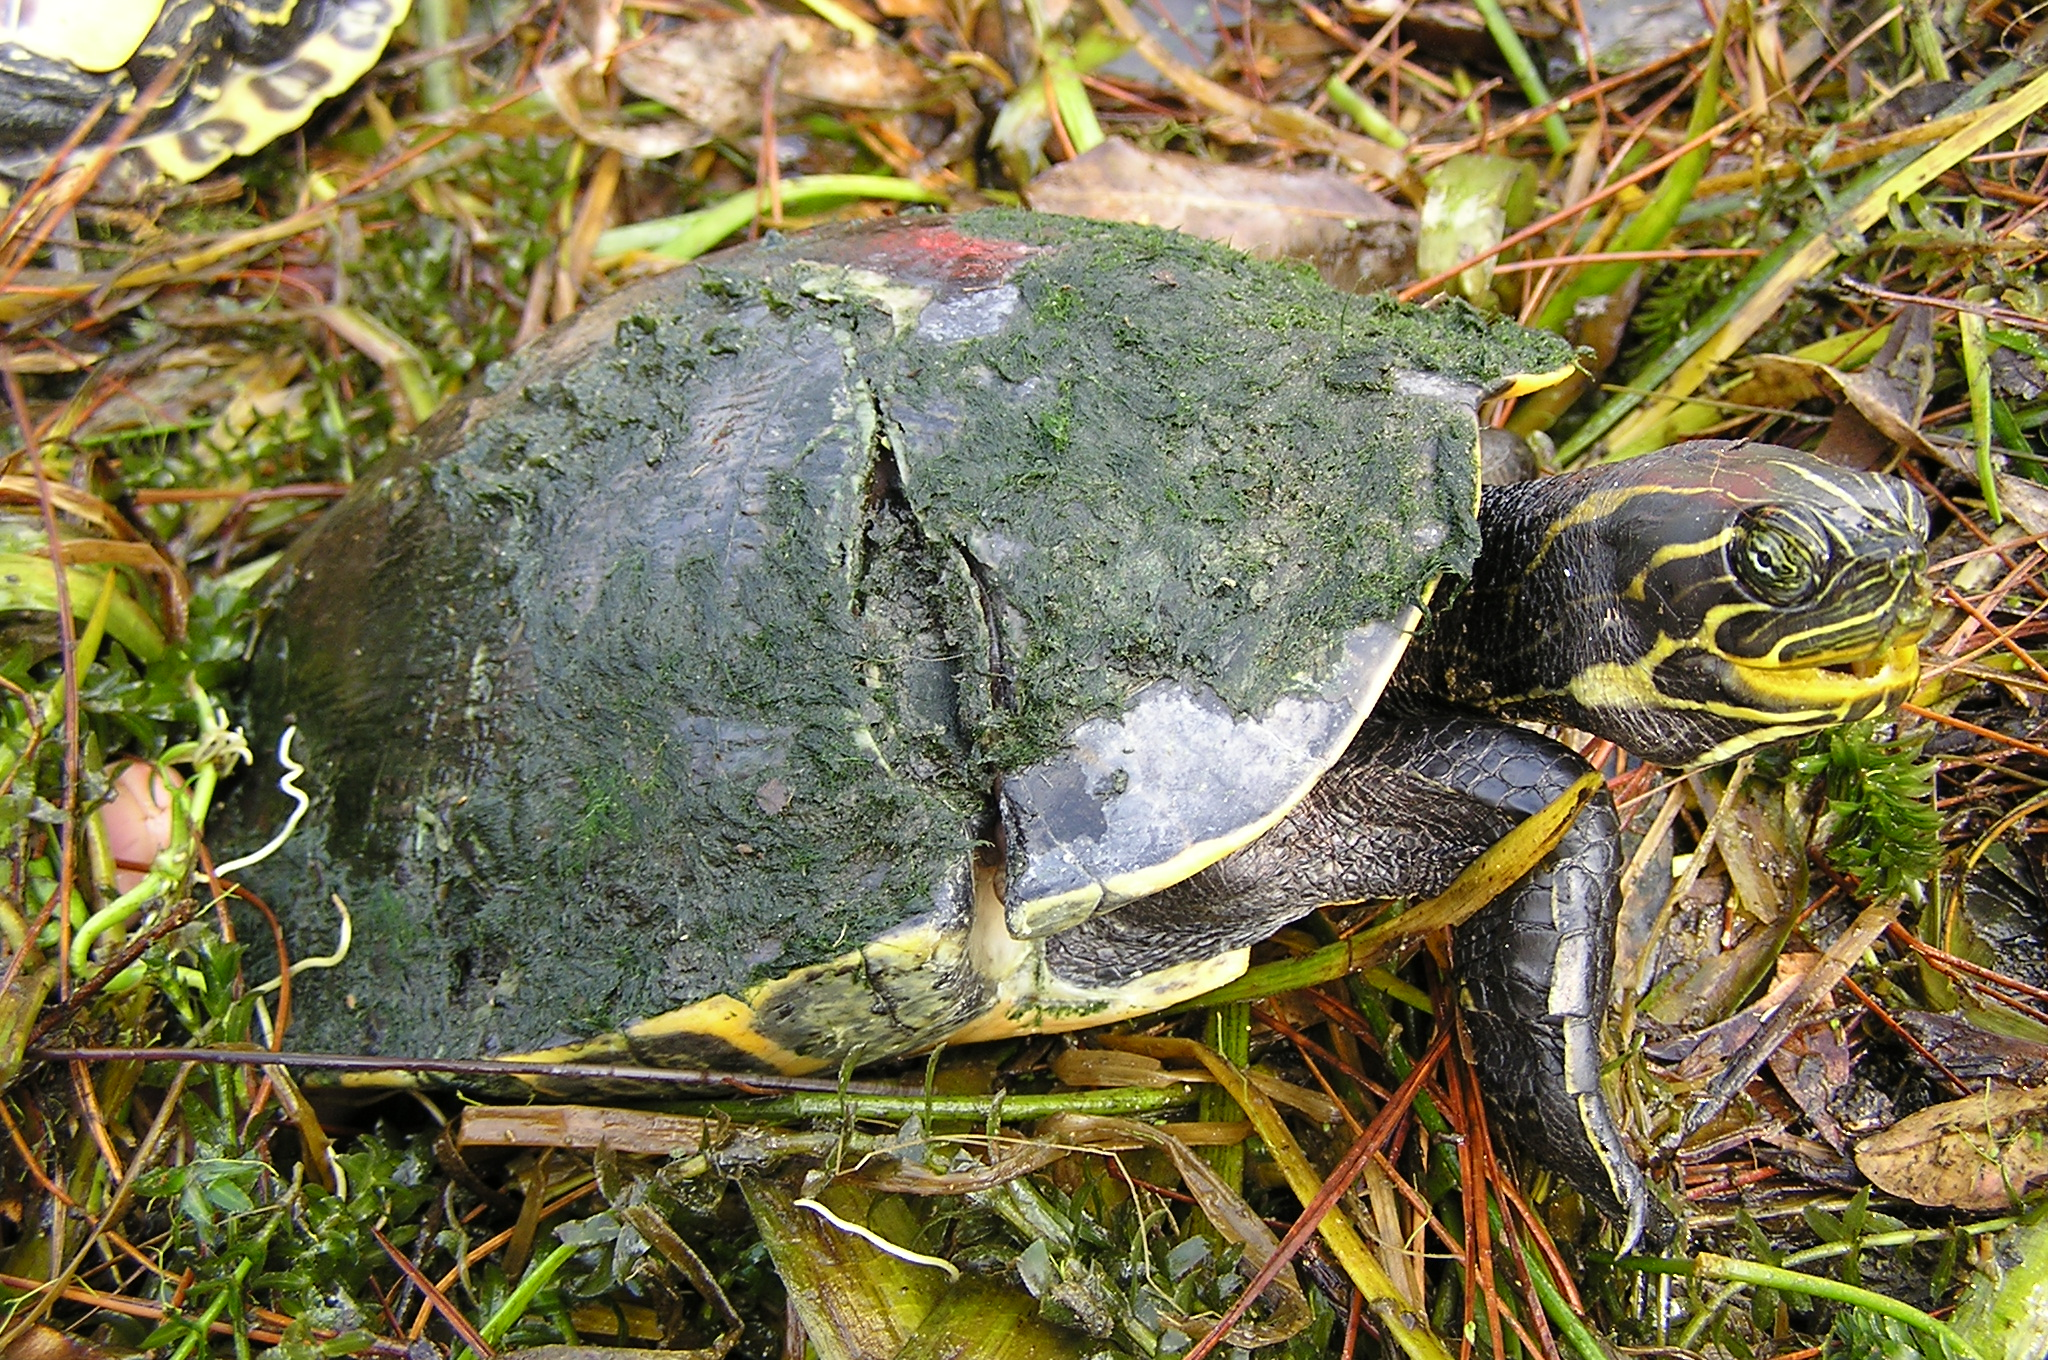 Young Suwannee cooter with a healed wound caused by a boat strike.